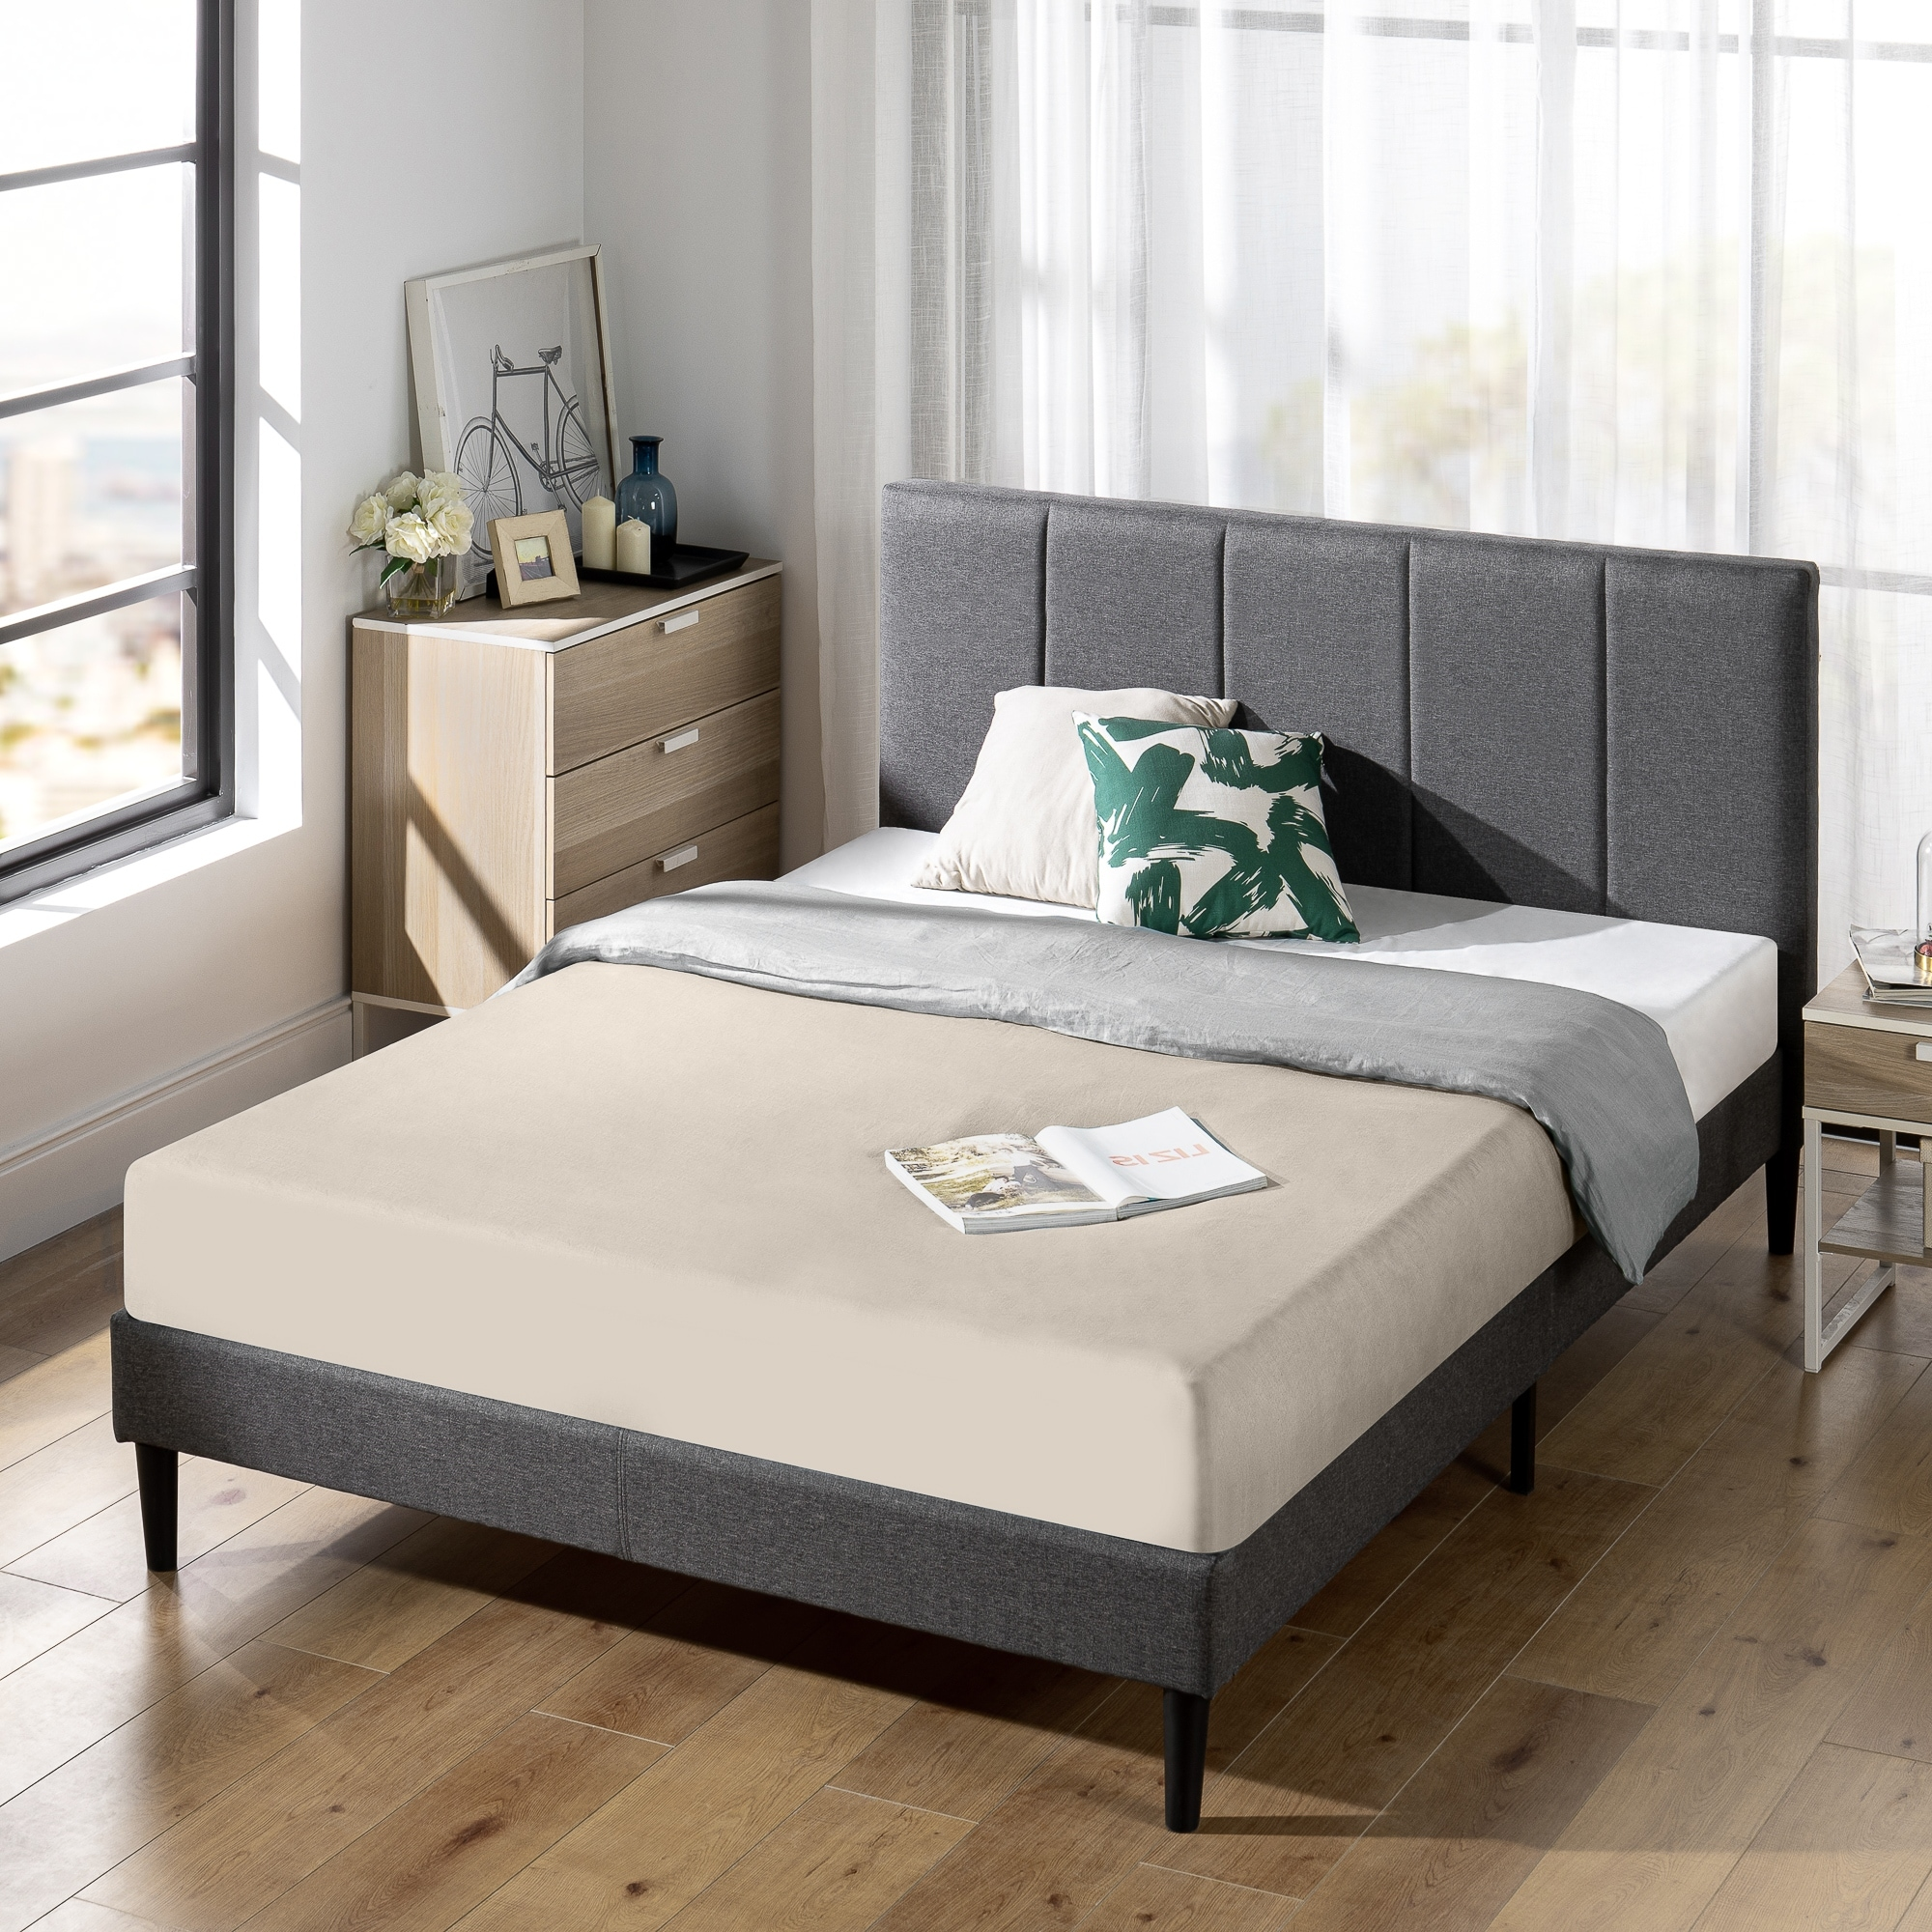 Priage By Zinus Upholstered Low Headboard Platform Bed Frame Overstock 32006948